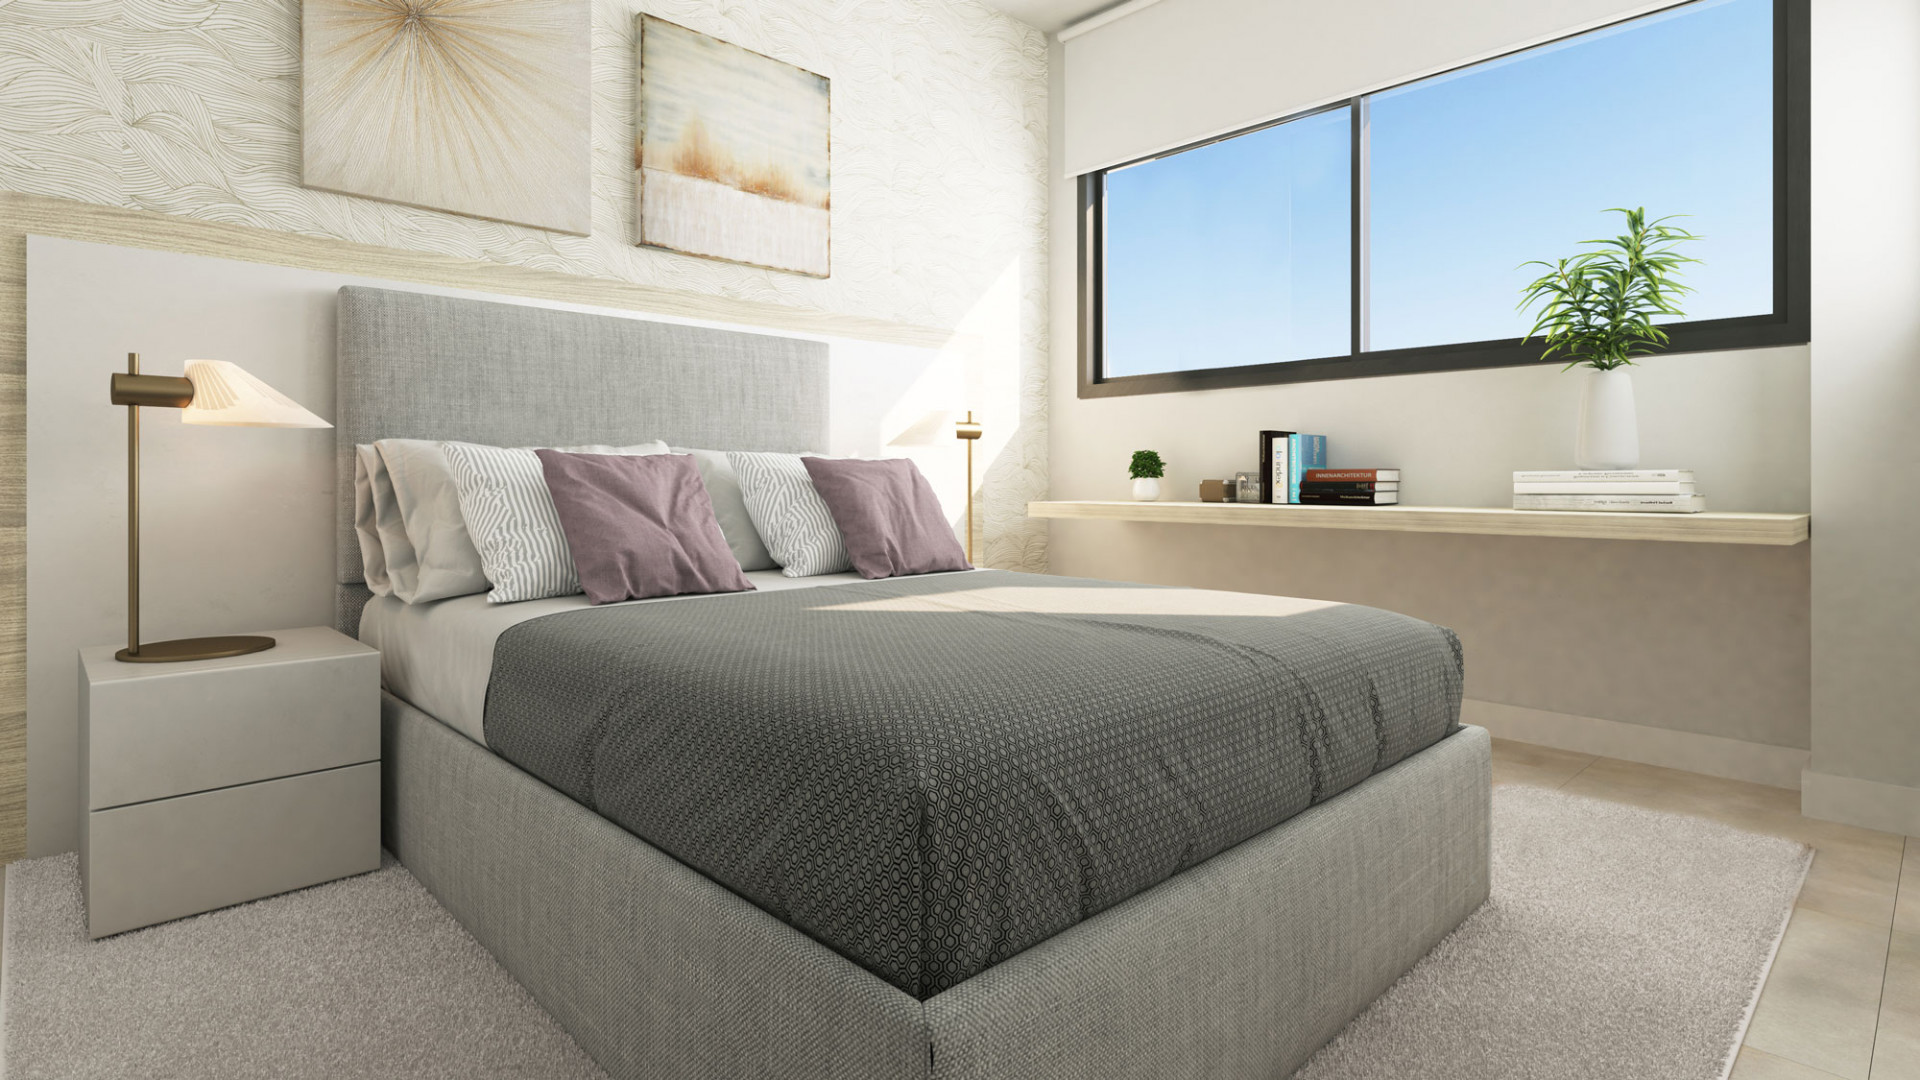 New stunning modern apartments for sale in Manilva